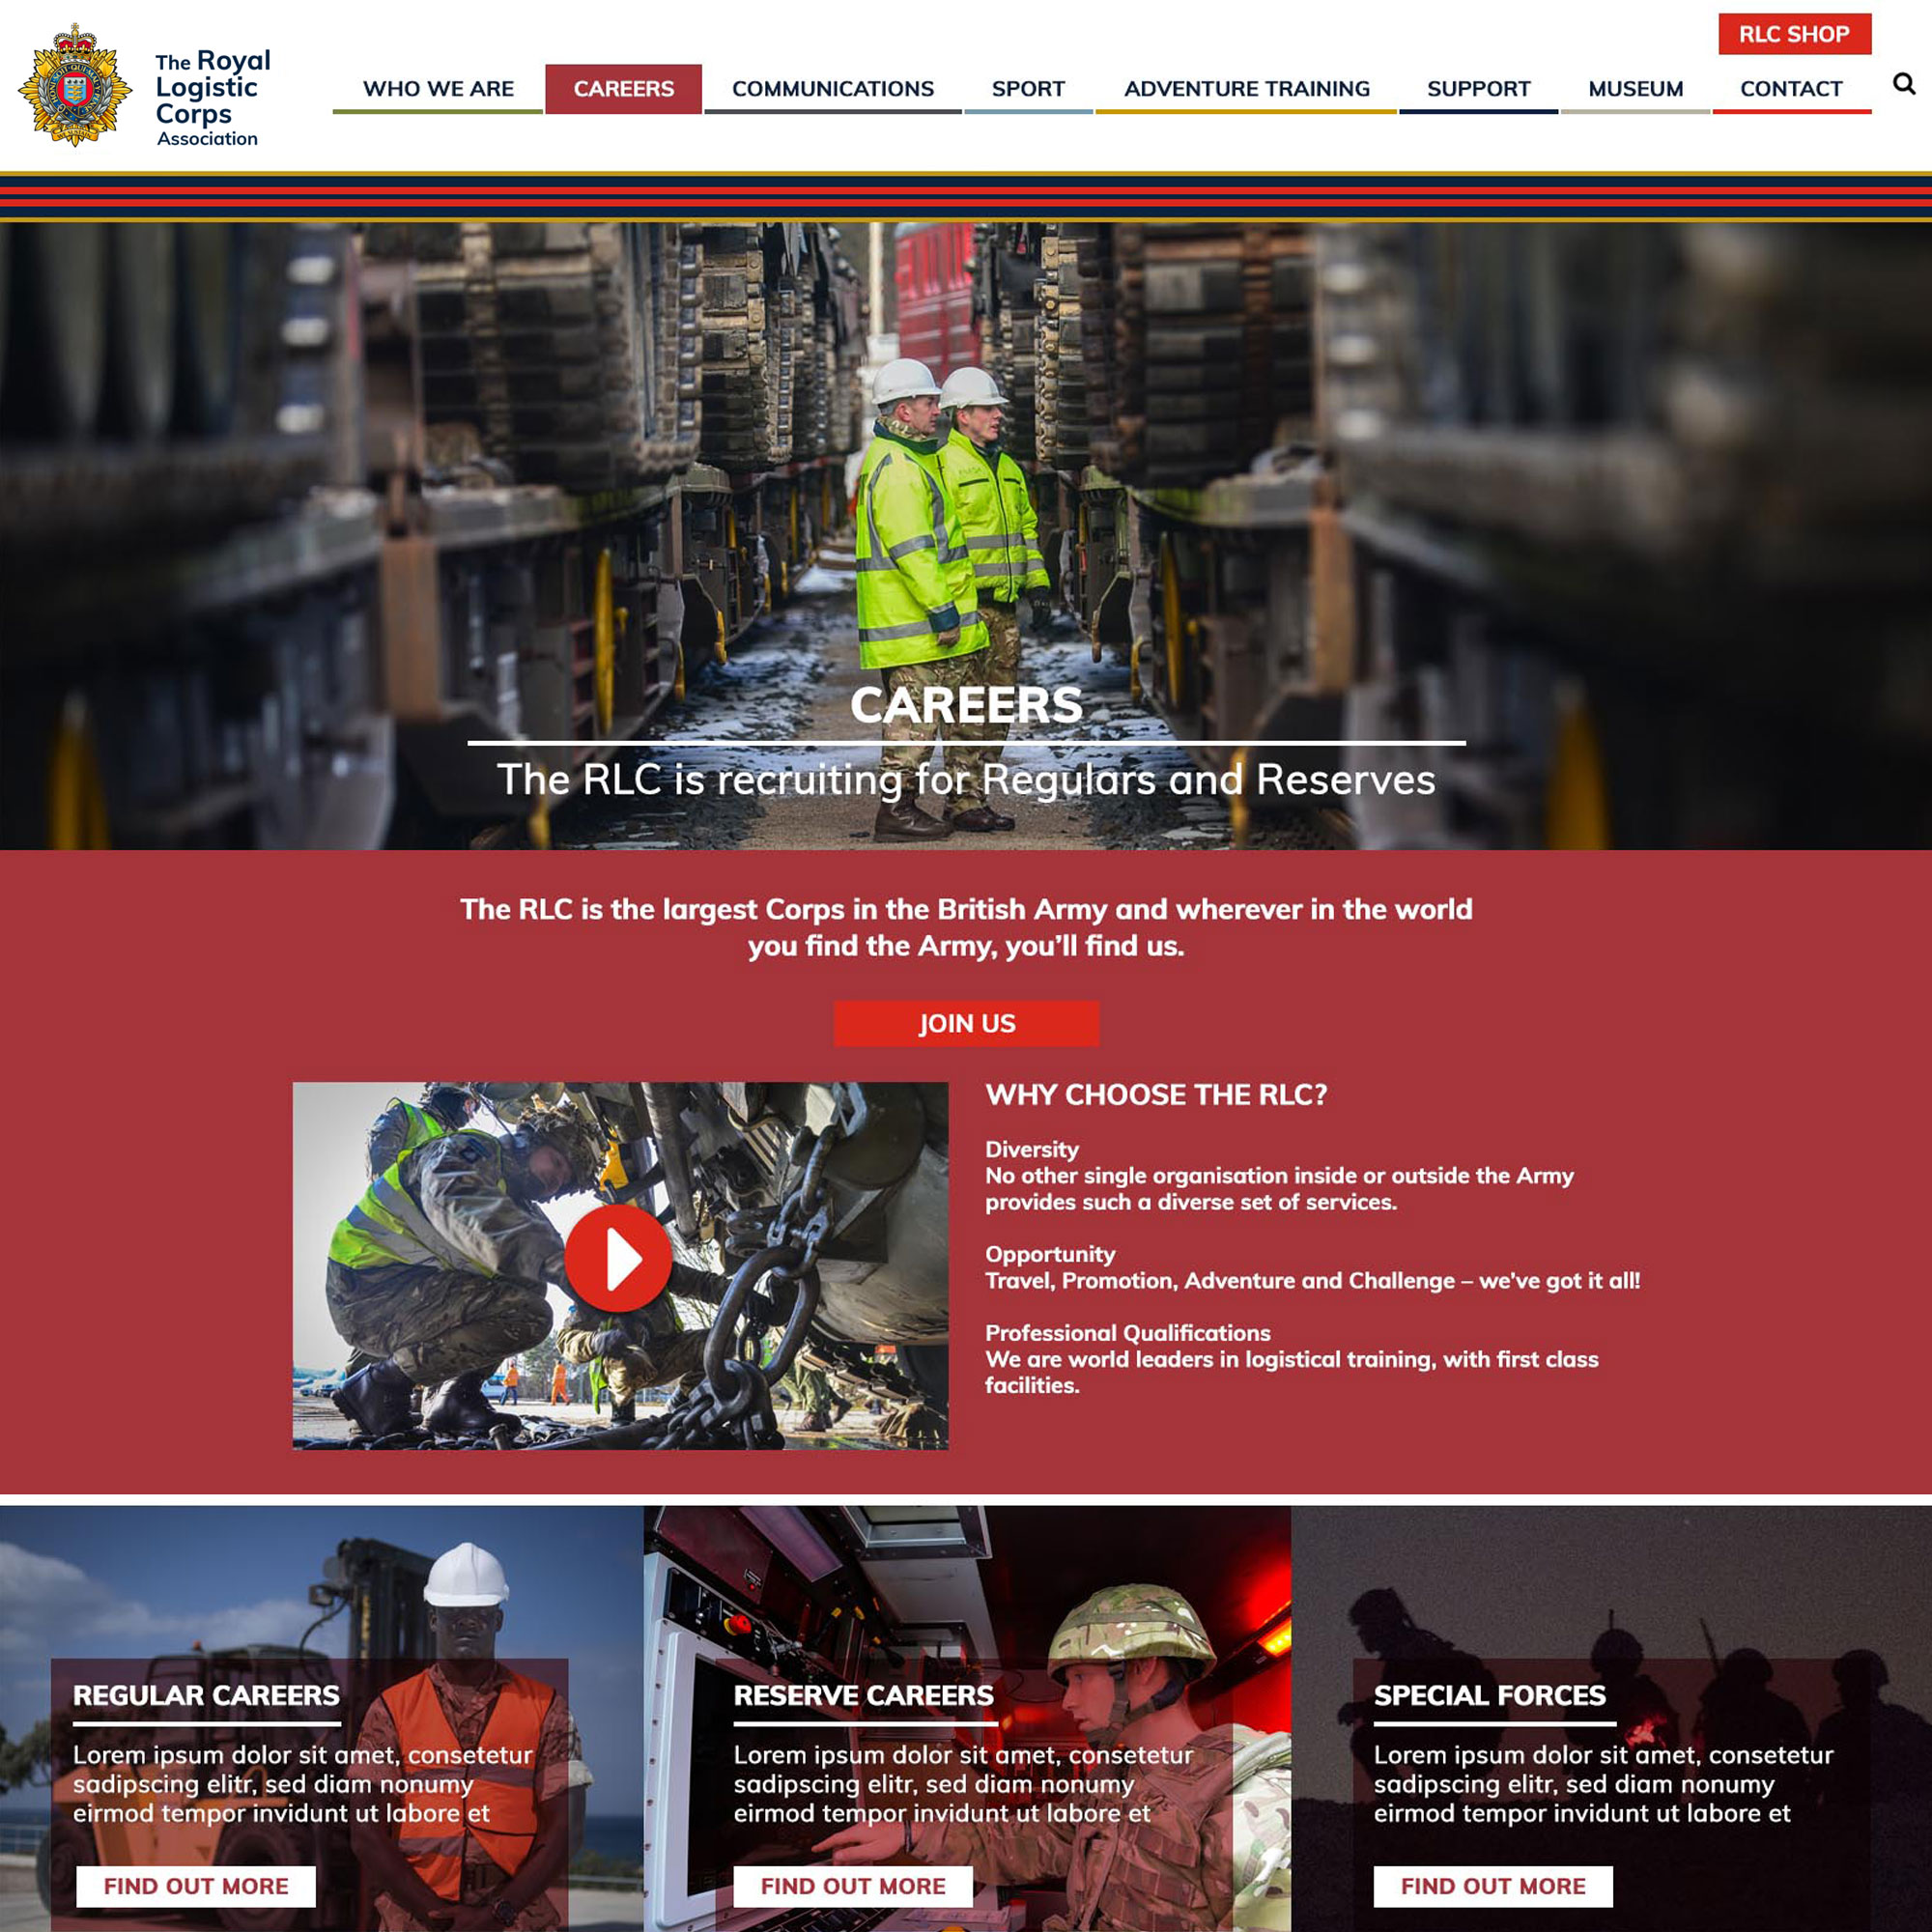 royal logistic corps new careers page